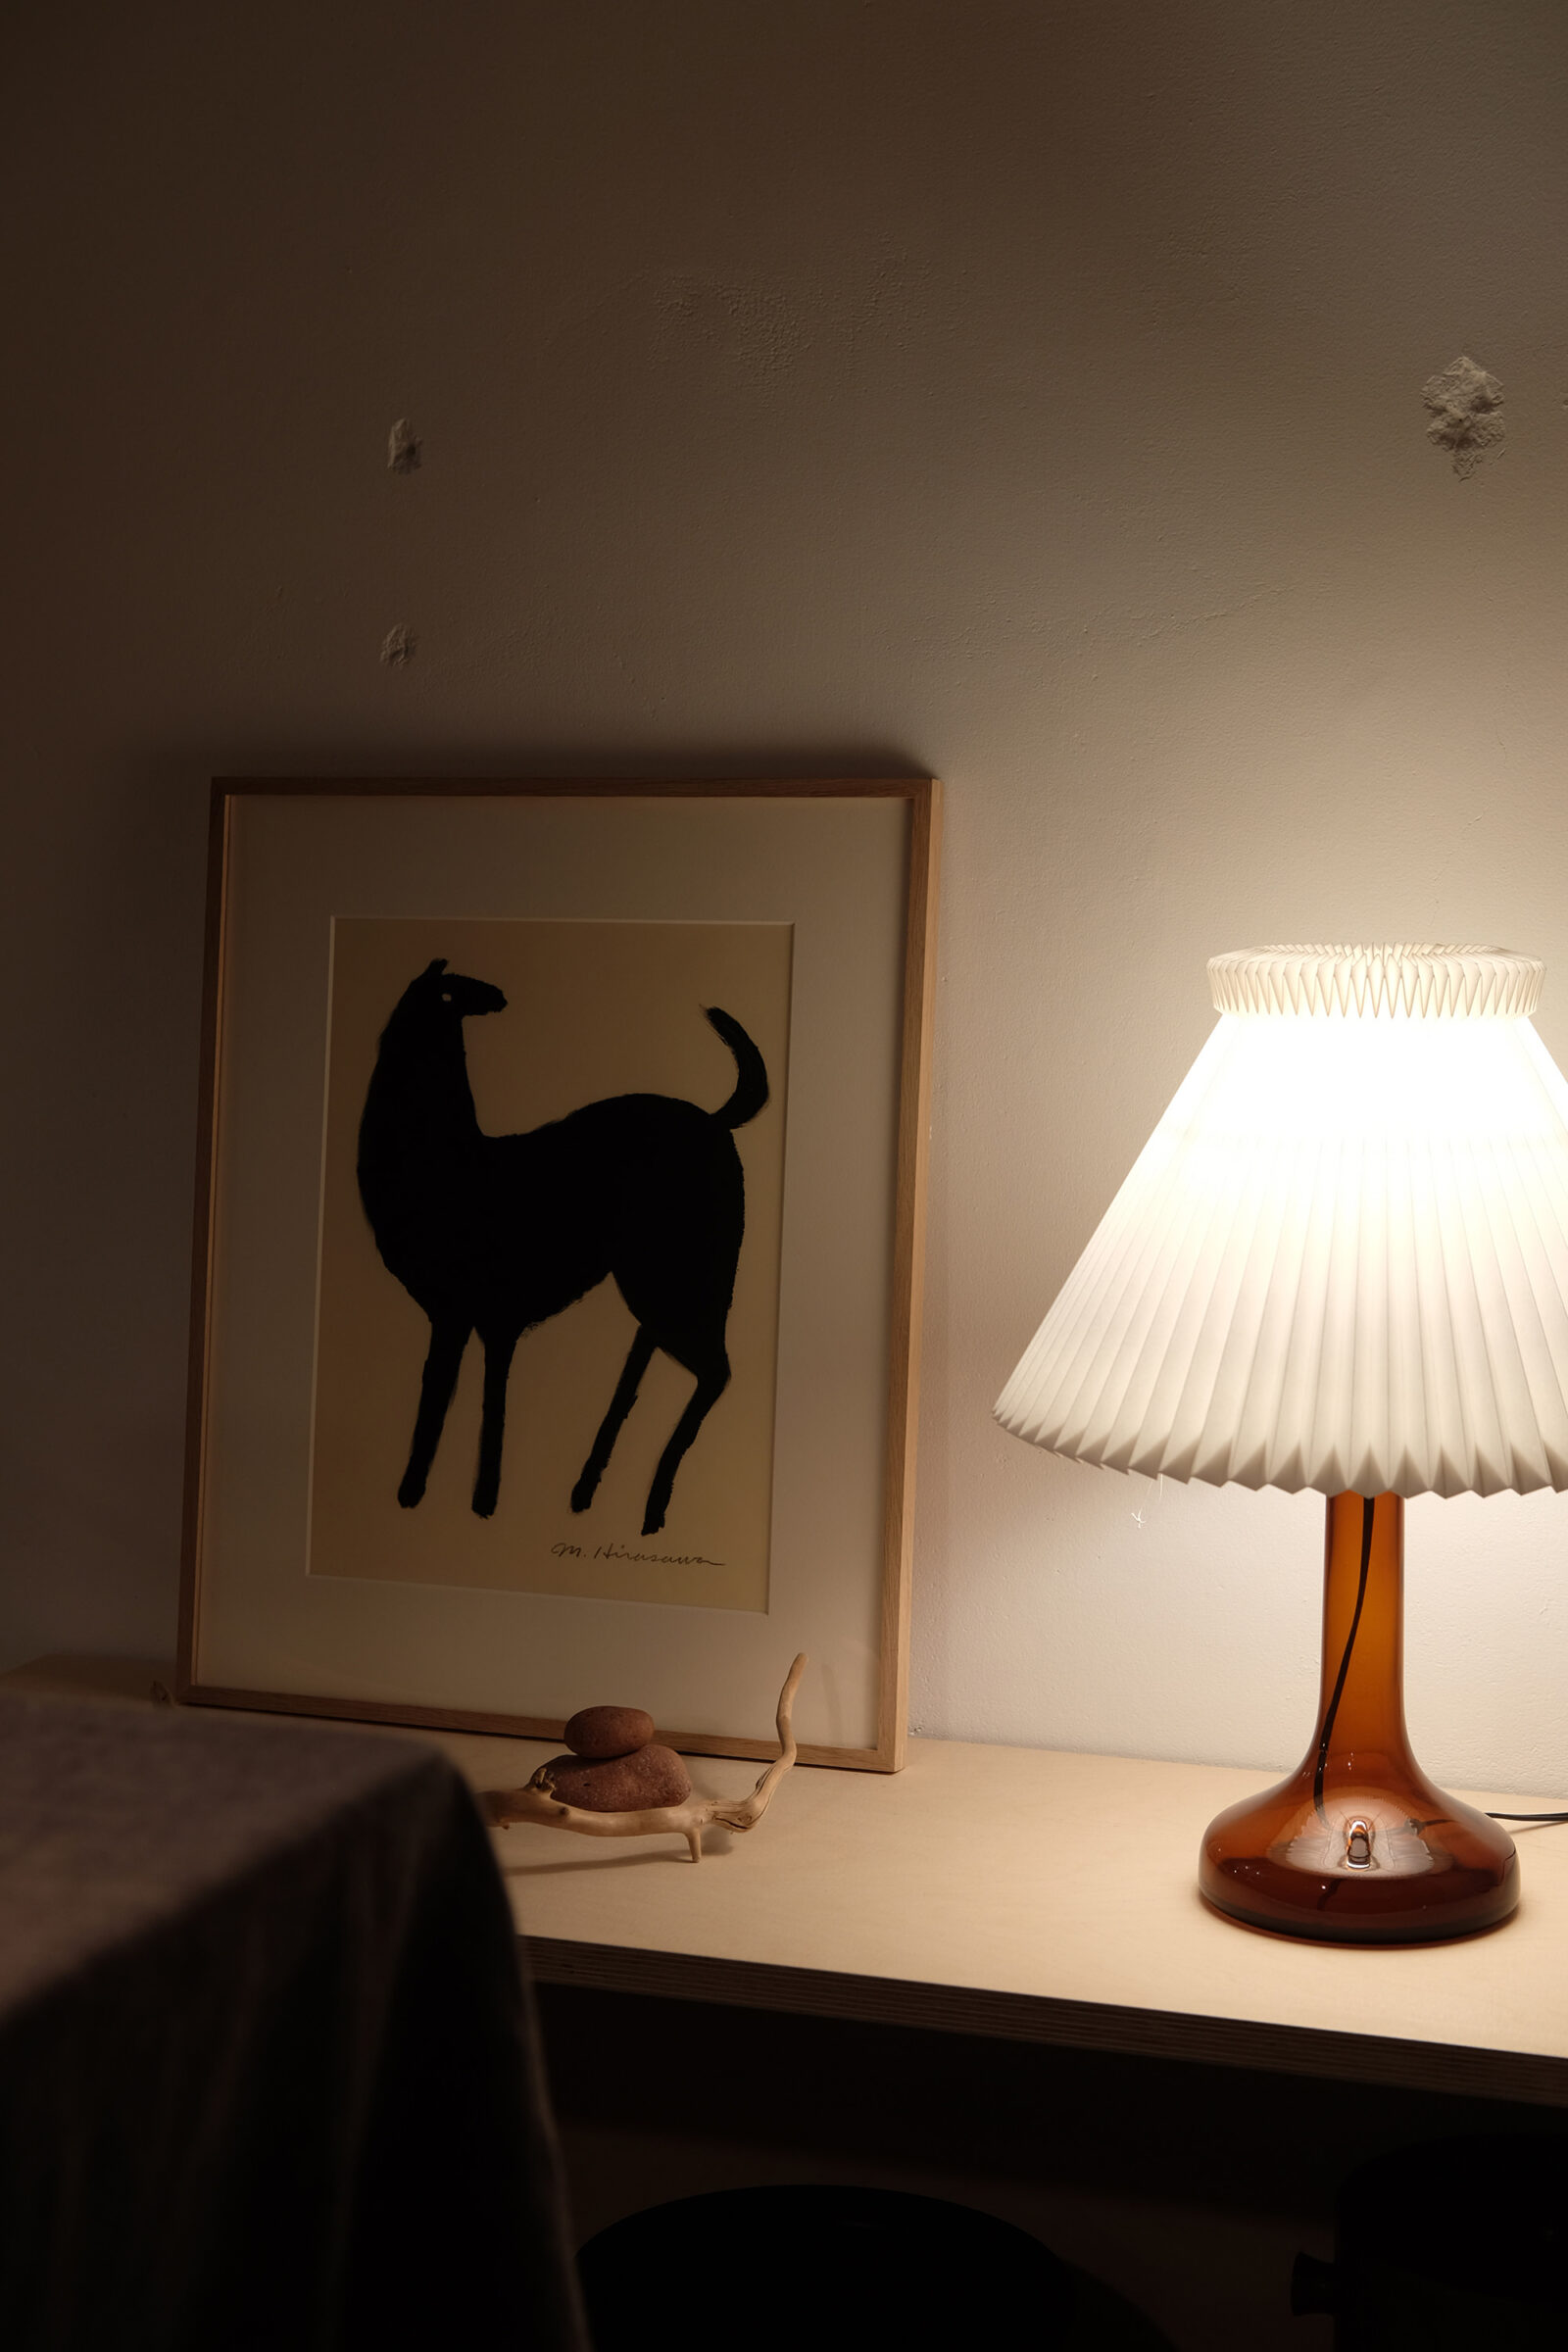 TMD STIL GALLERI – Furniture and Daily life goods - 2020.5.14 22:17